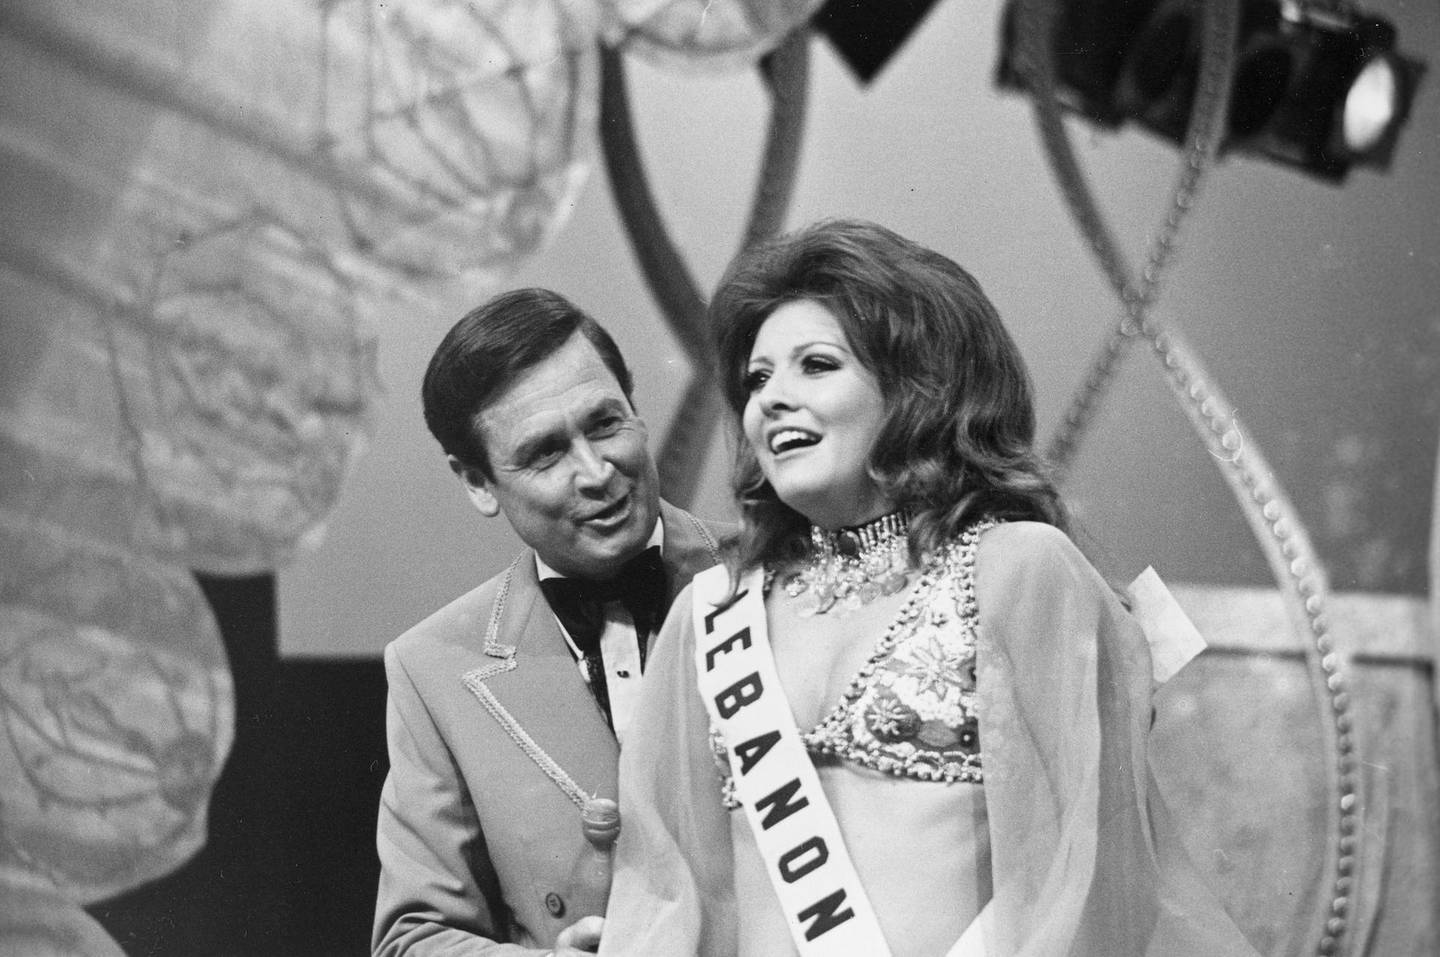 Georgina Rizk, from Beirut, Lebanon, reacts after being named Miss Universe as pageant host Bob Barker talks to her at the Miami Beach Auditorium, Fla., July 24, 1971.  (AP Photo)